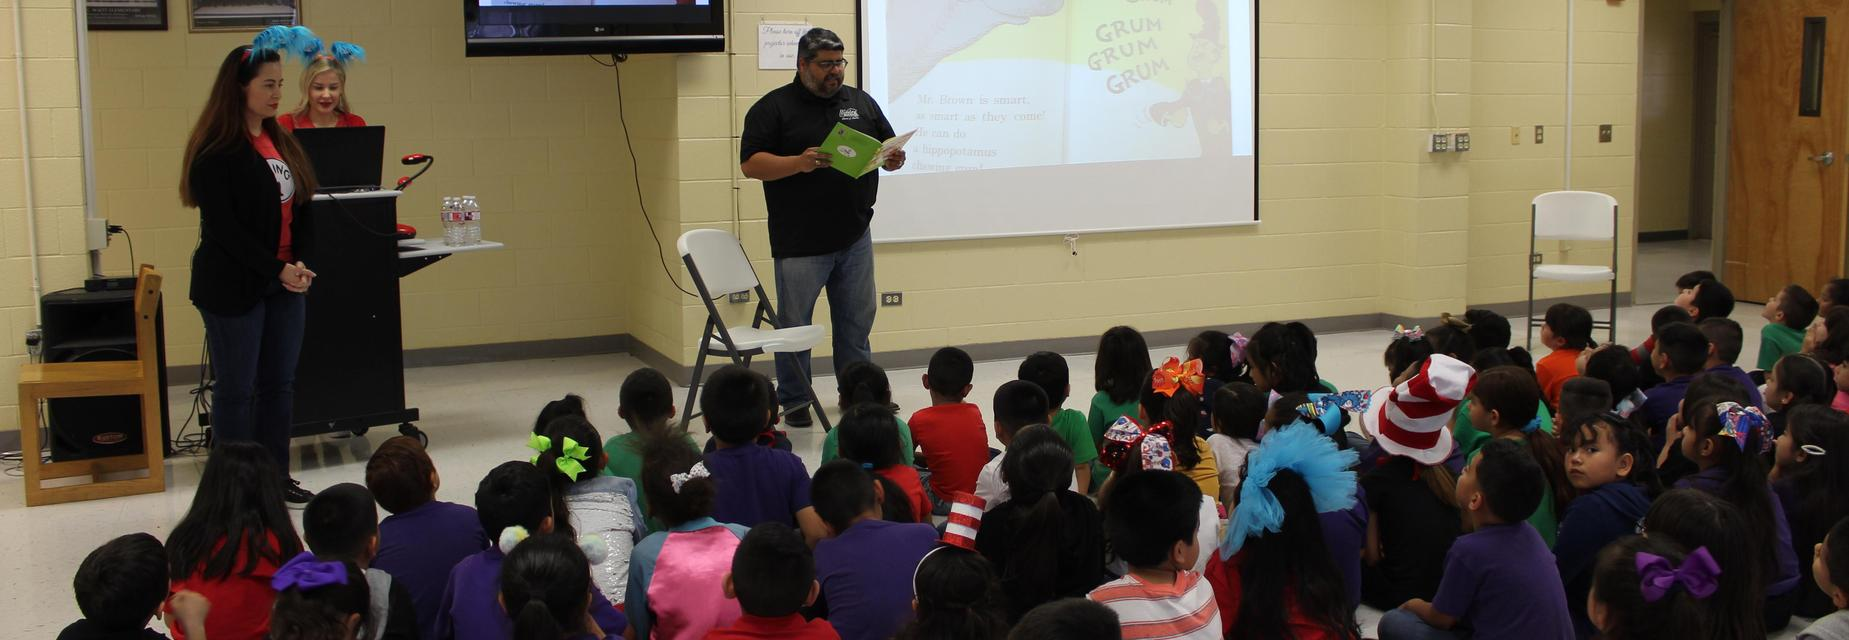 Board member reads to students